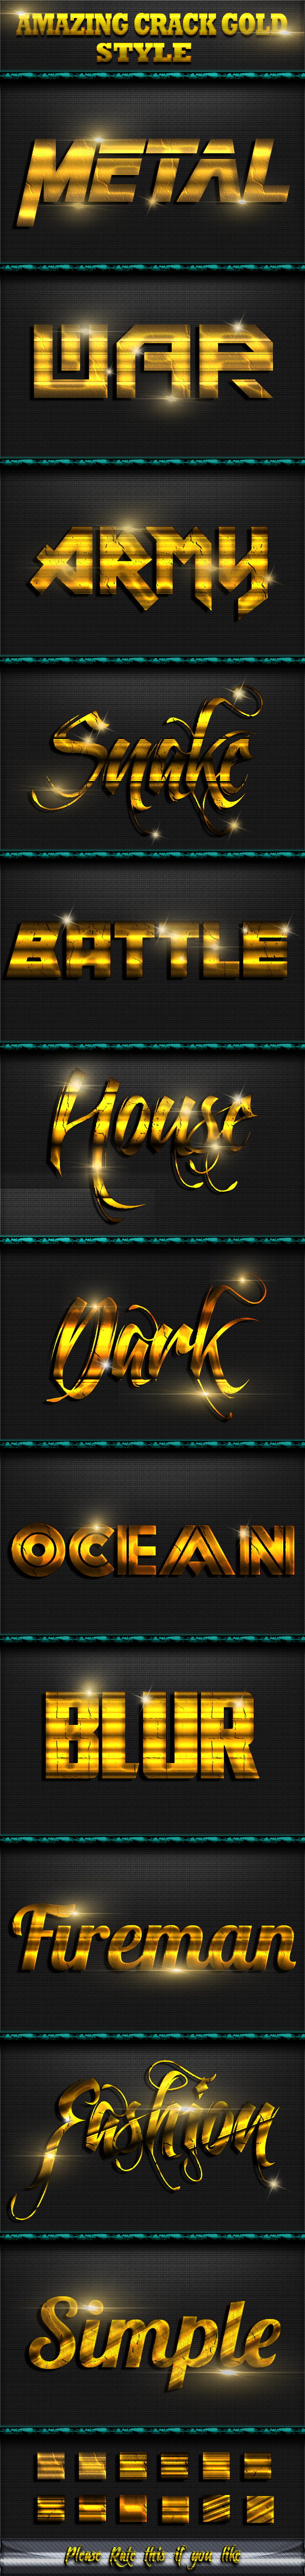 Cracked Gold Style Text Effect - Text Effects Actions